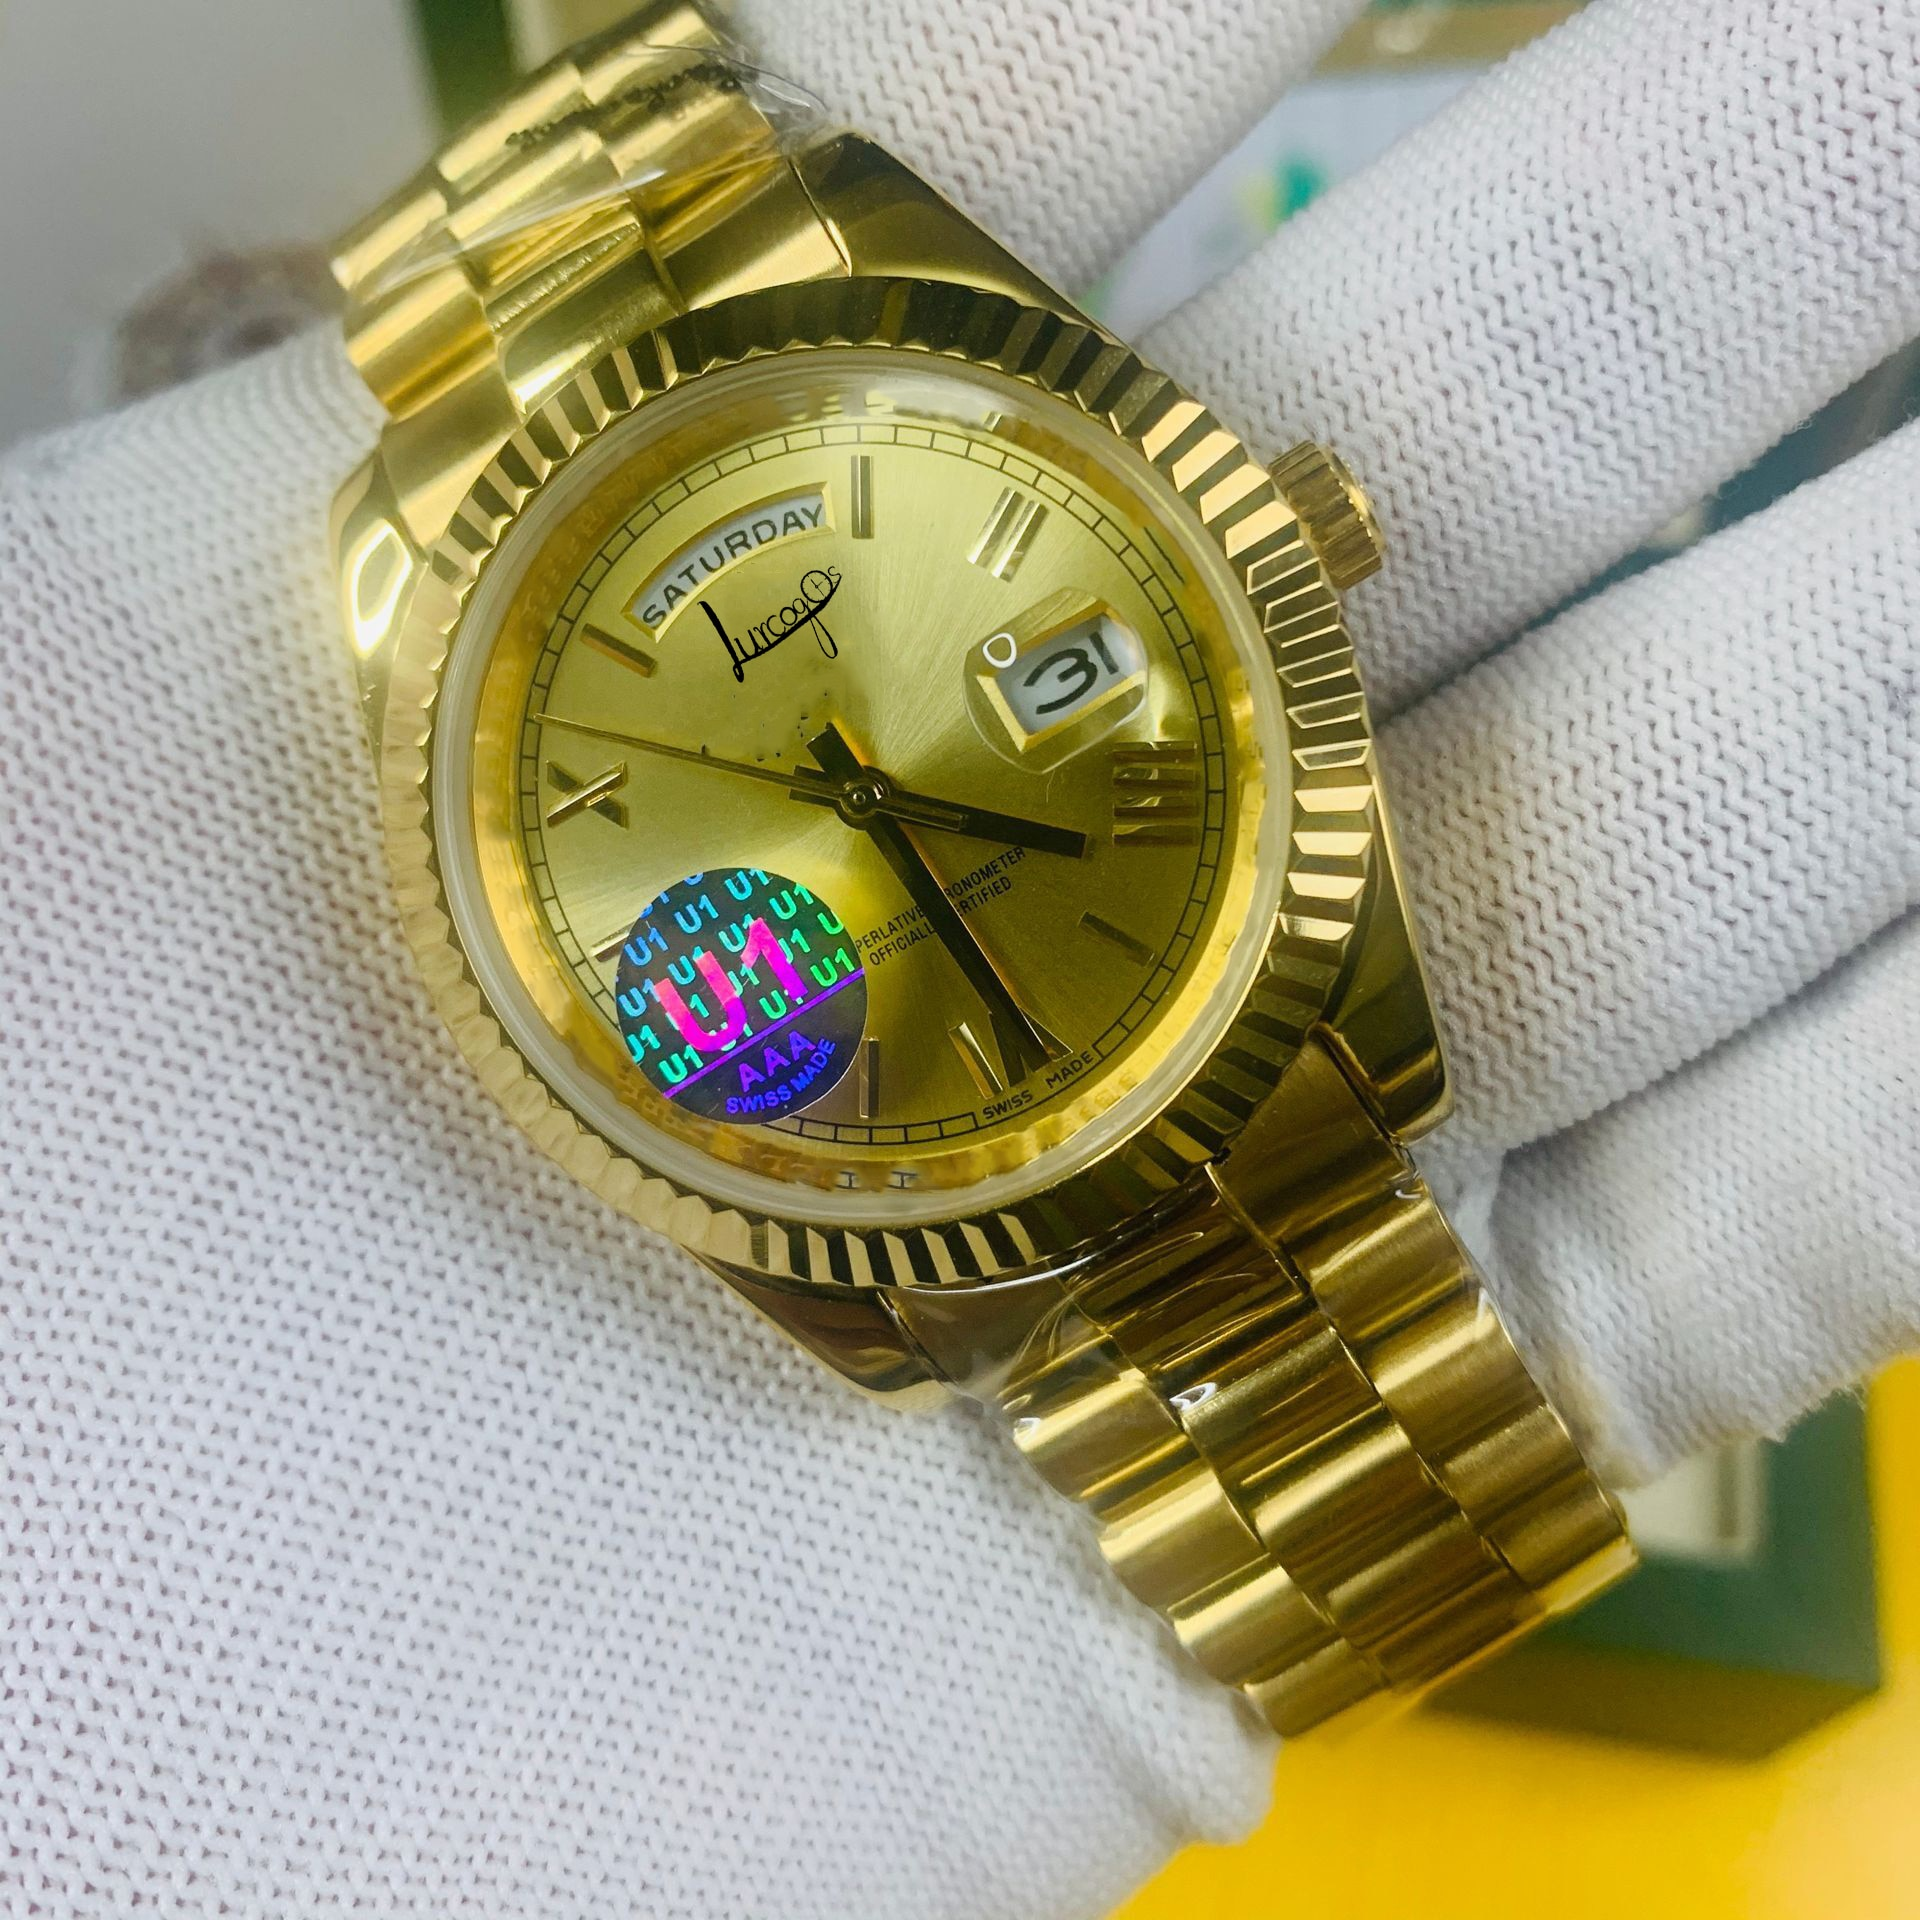 18k gold watch 40mm size AAA men's luxury watch date automatic winding mechanical sliding surface smooth second hand free deliv